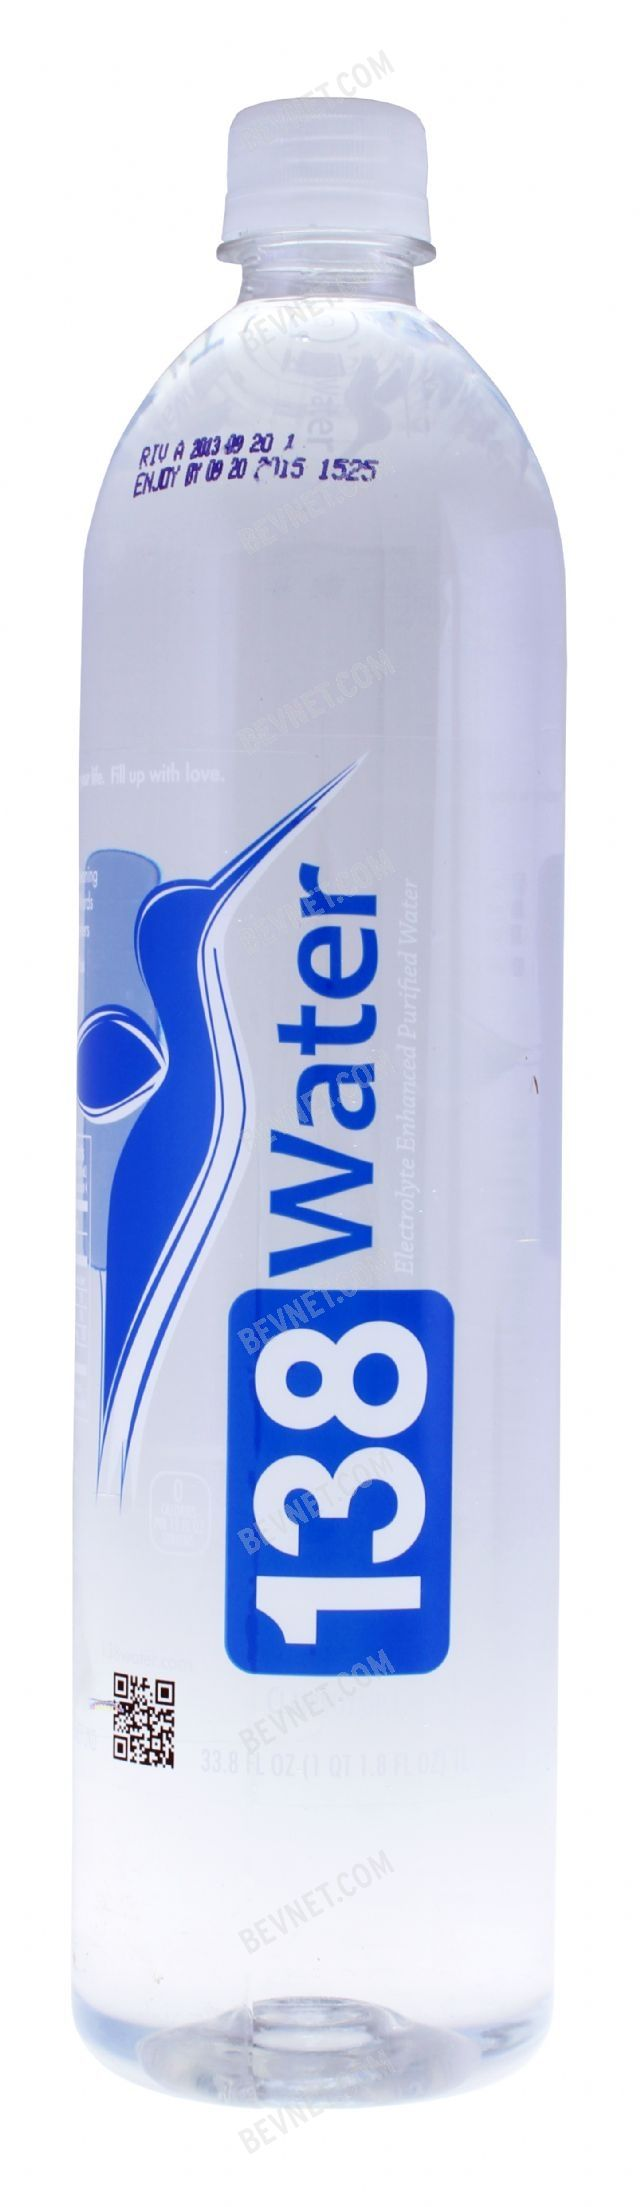 138 Water: